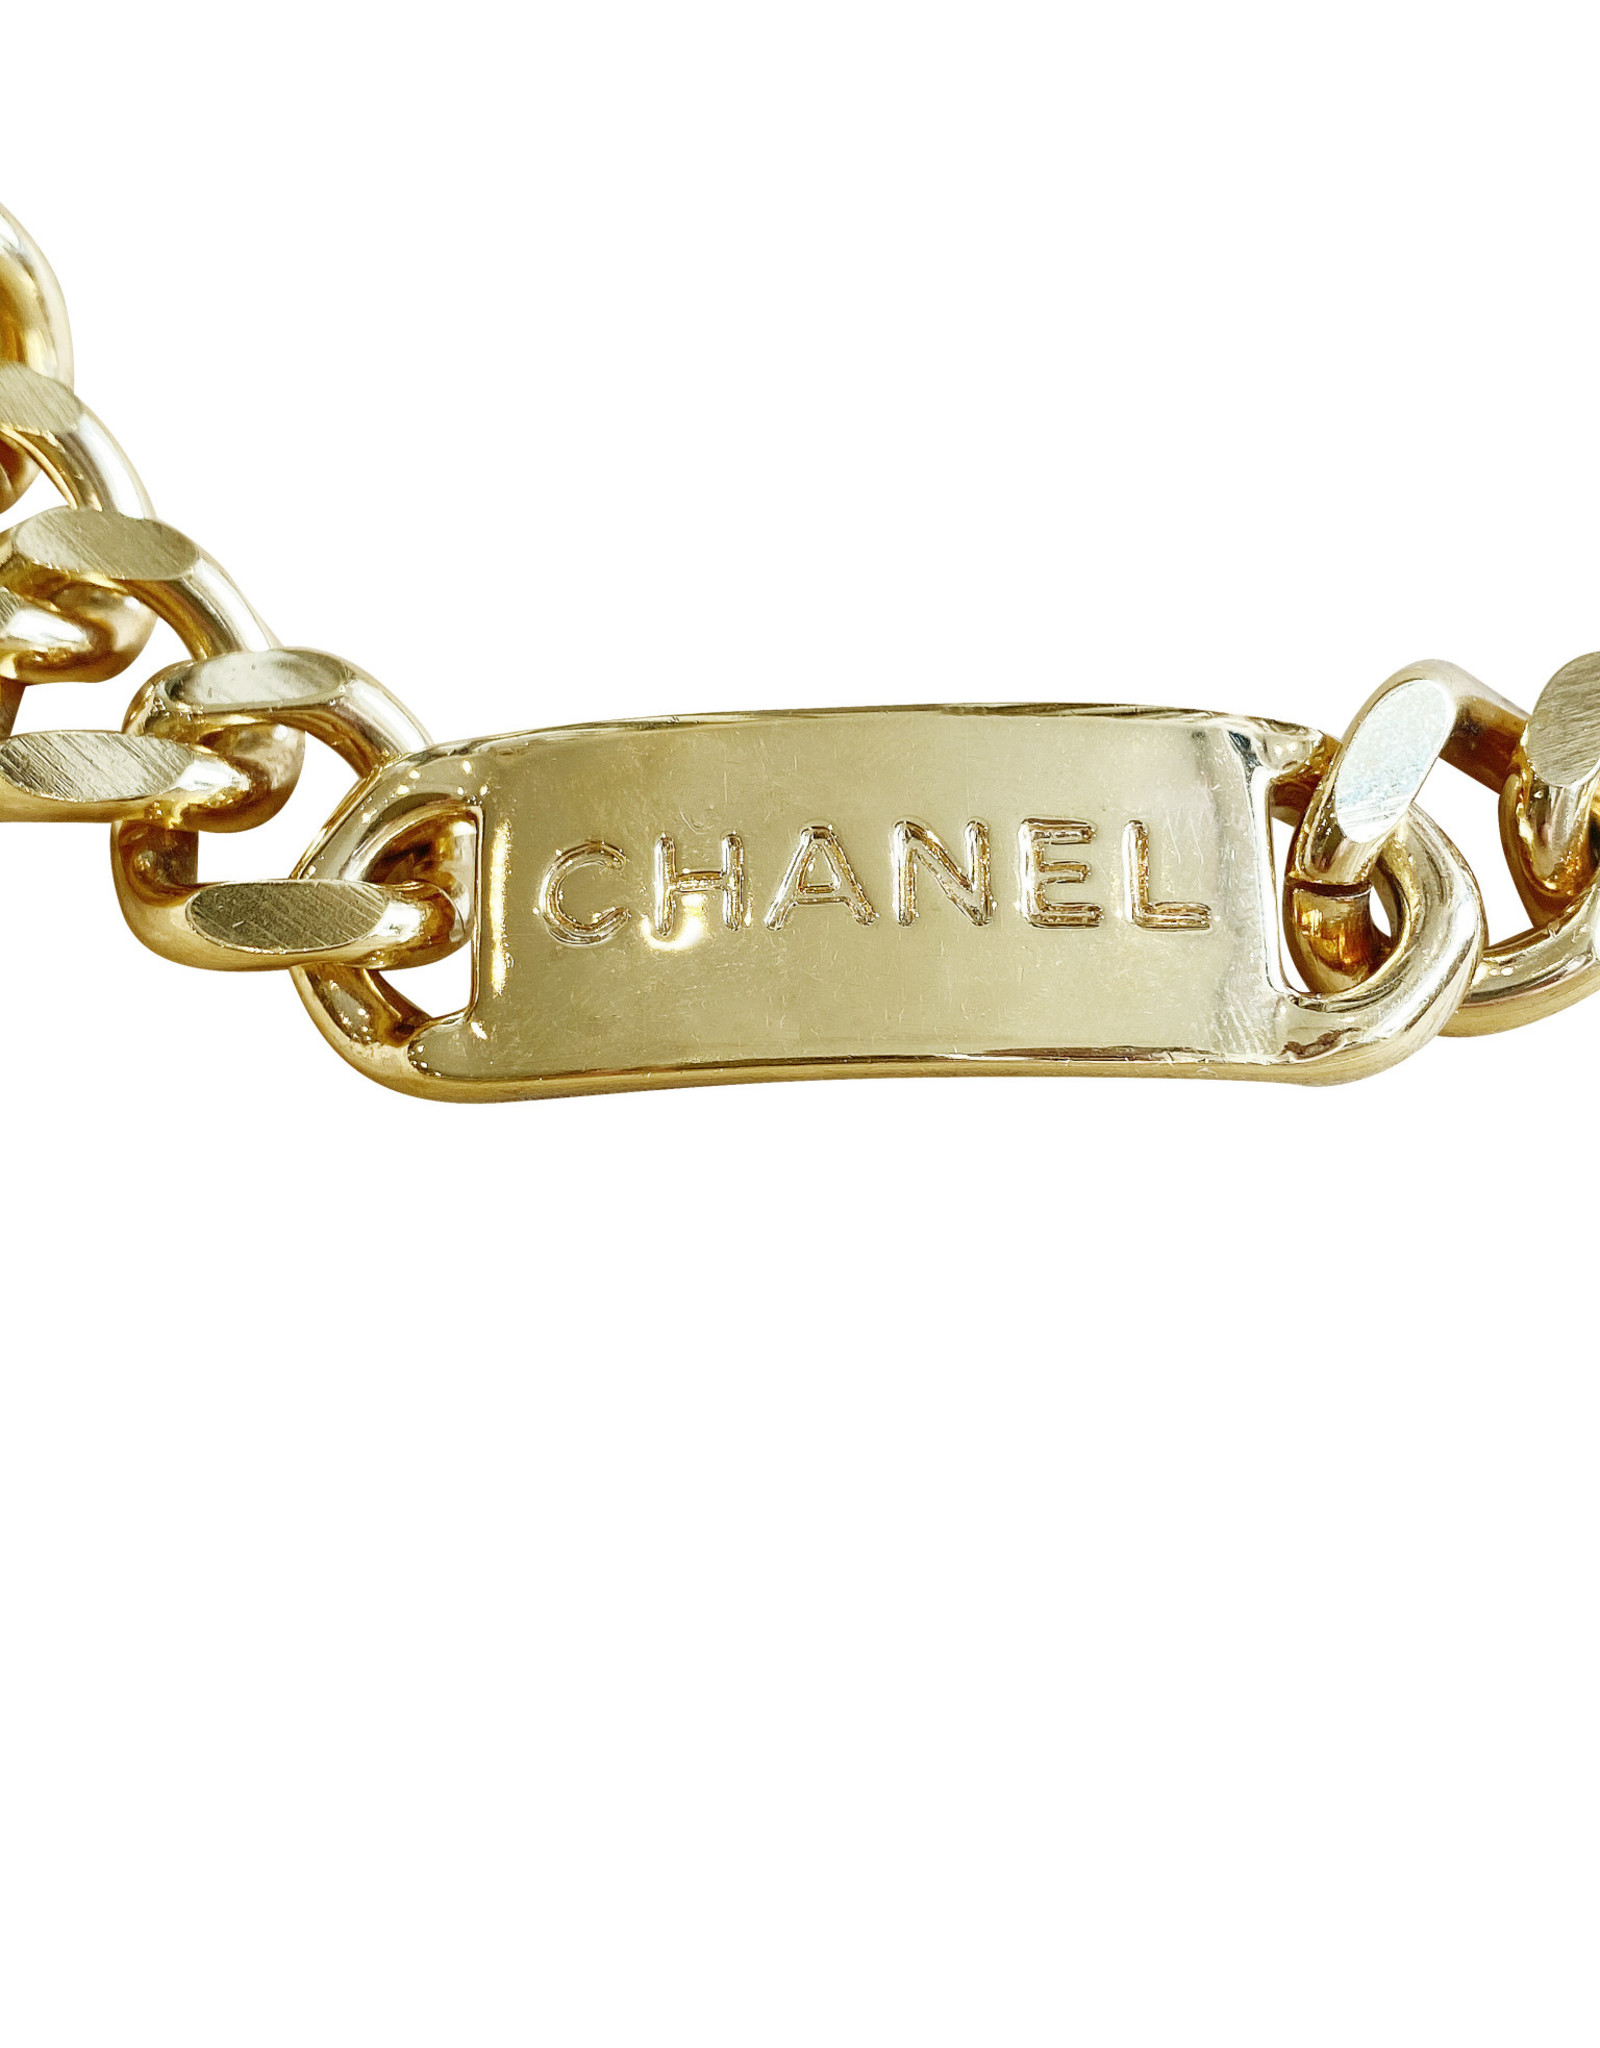 Chanel Chanel Medallion Chain Belt (1994 Vintage)